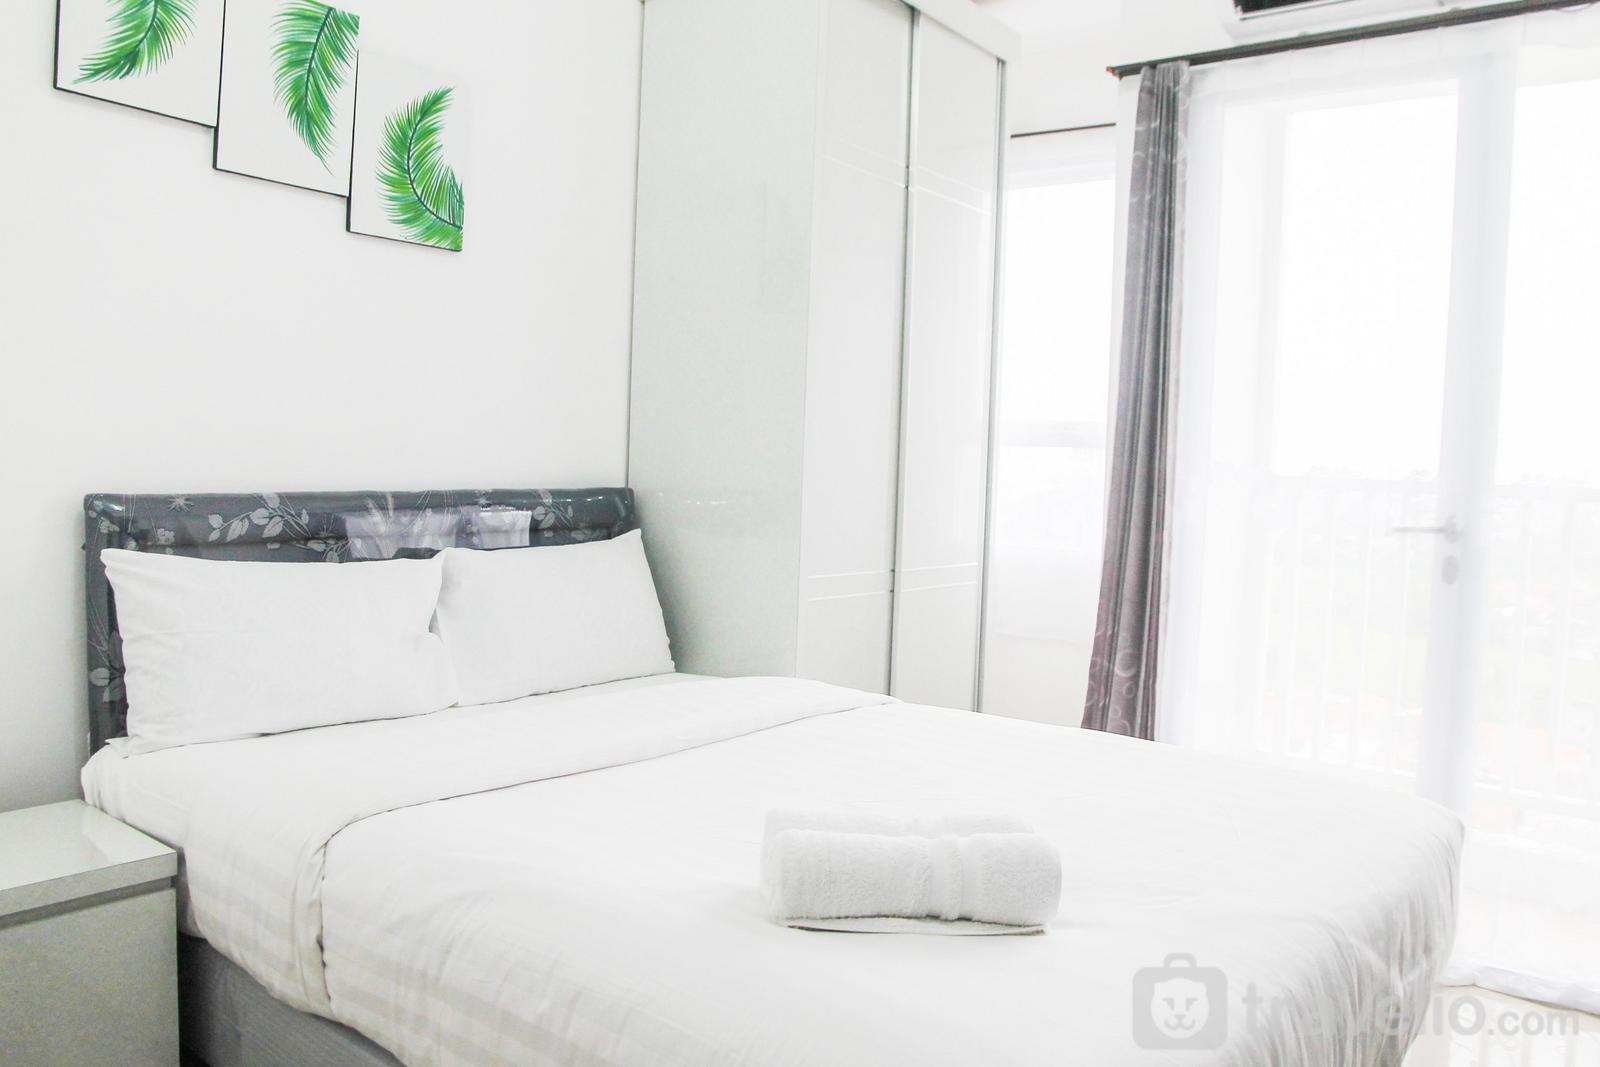 Poris 88 - Comfortable Studio Room Poris 88 Apartment near Bale Kota Mall By Travelio